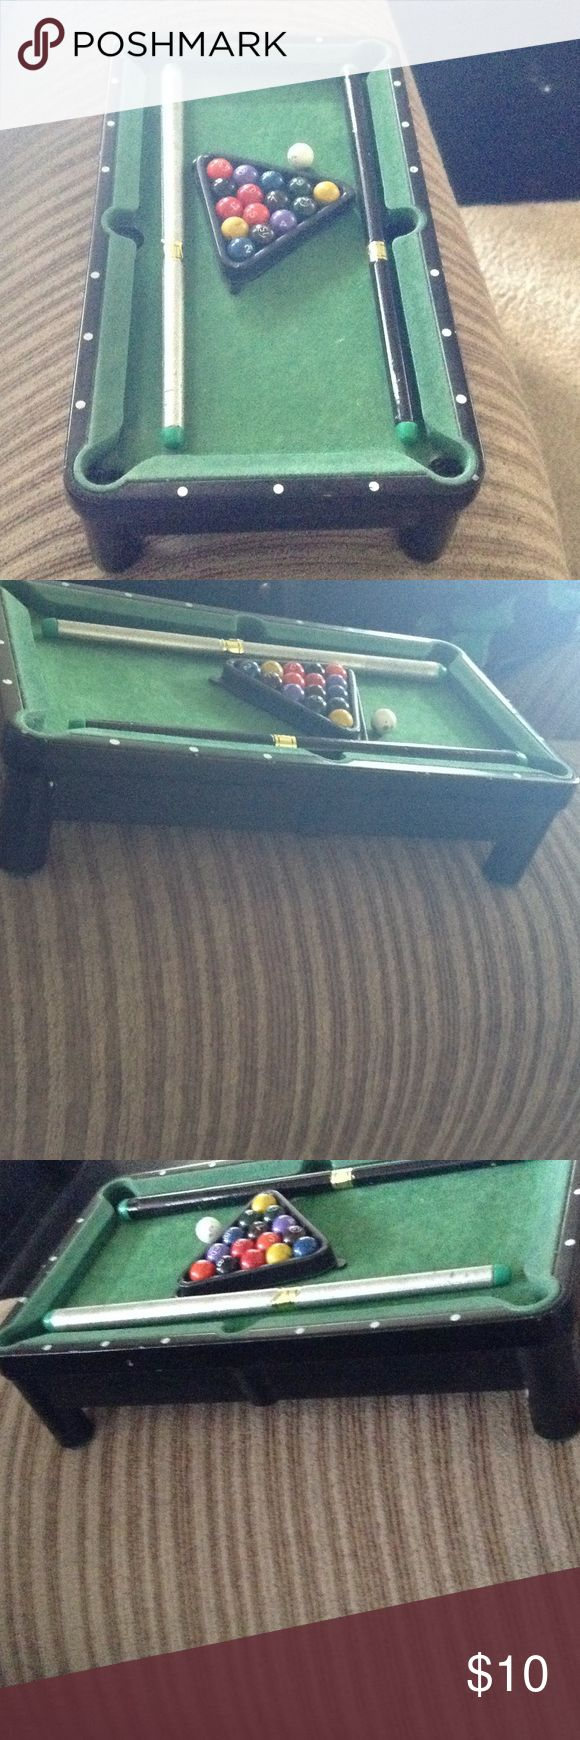 Mini tabletop Remote not included. Using for size comparison. Used tabletop pool table. Some scuffs and scratches on balls and around table and on sticks. Other